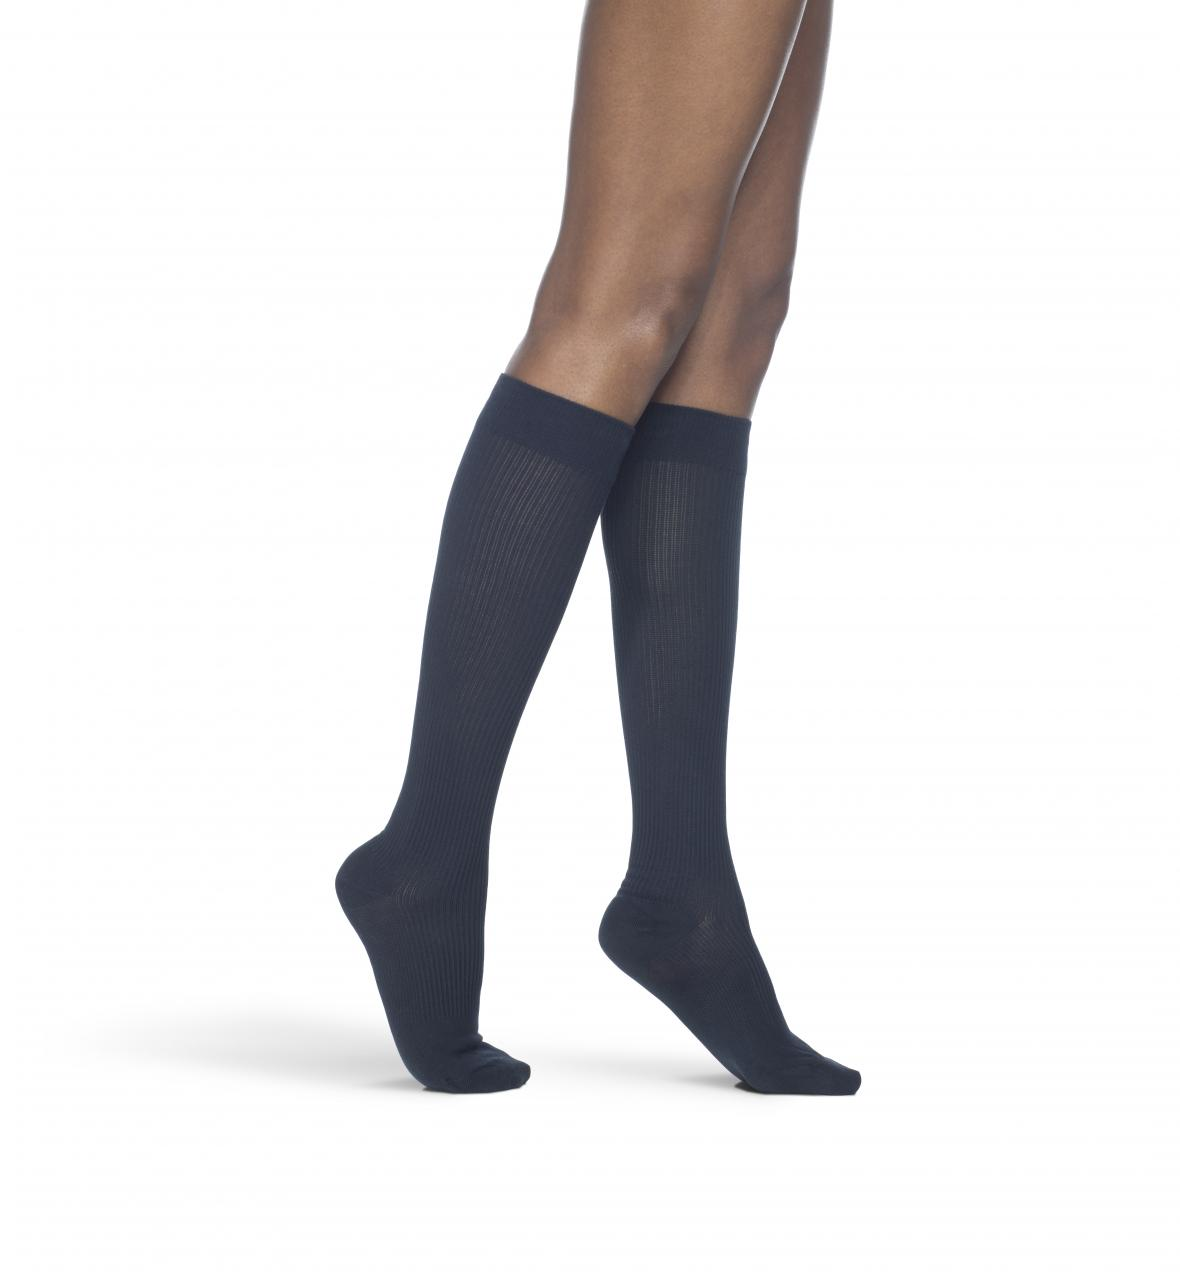 SIGVARIS Announces the Launch of TRAVENO – a travel sock for all occasions